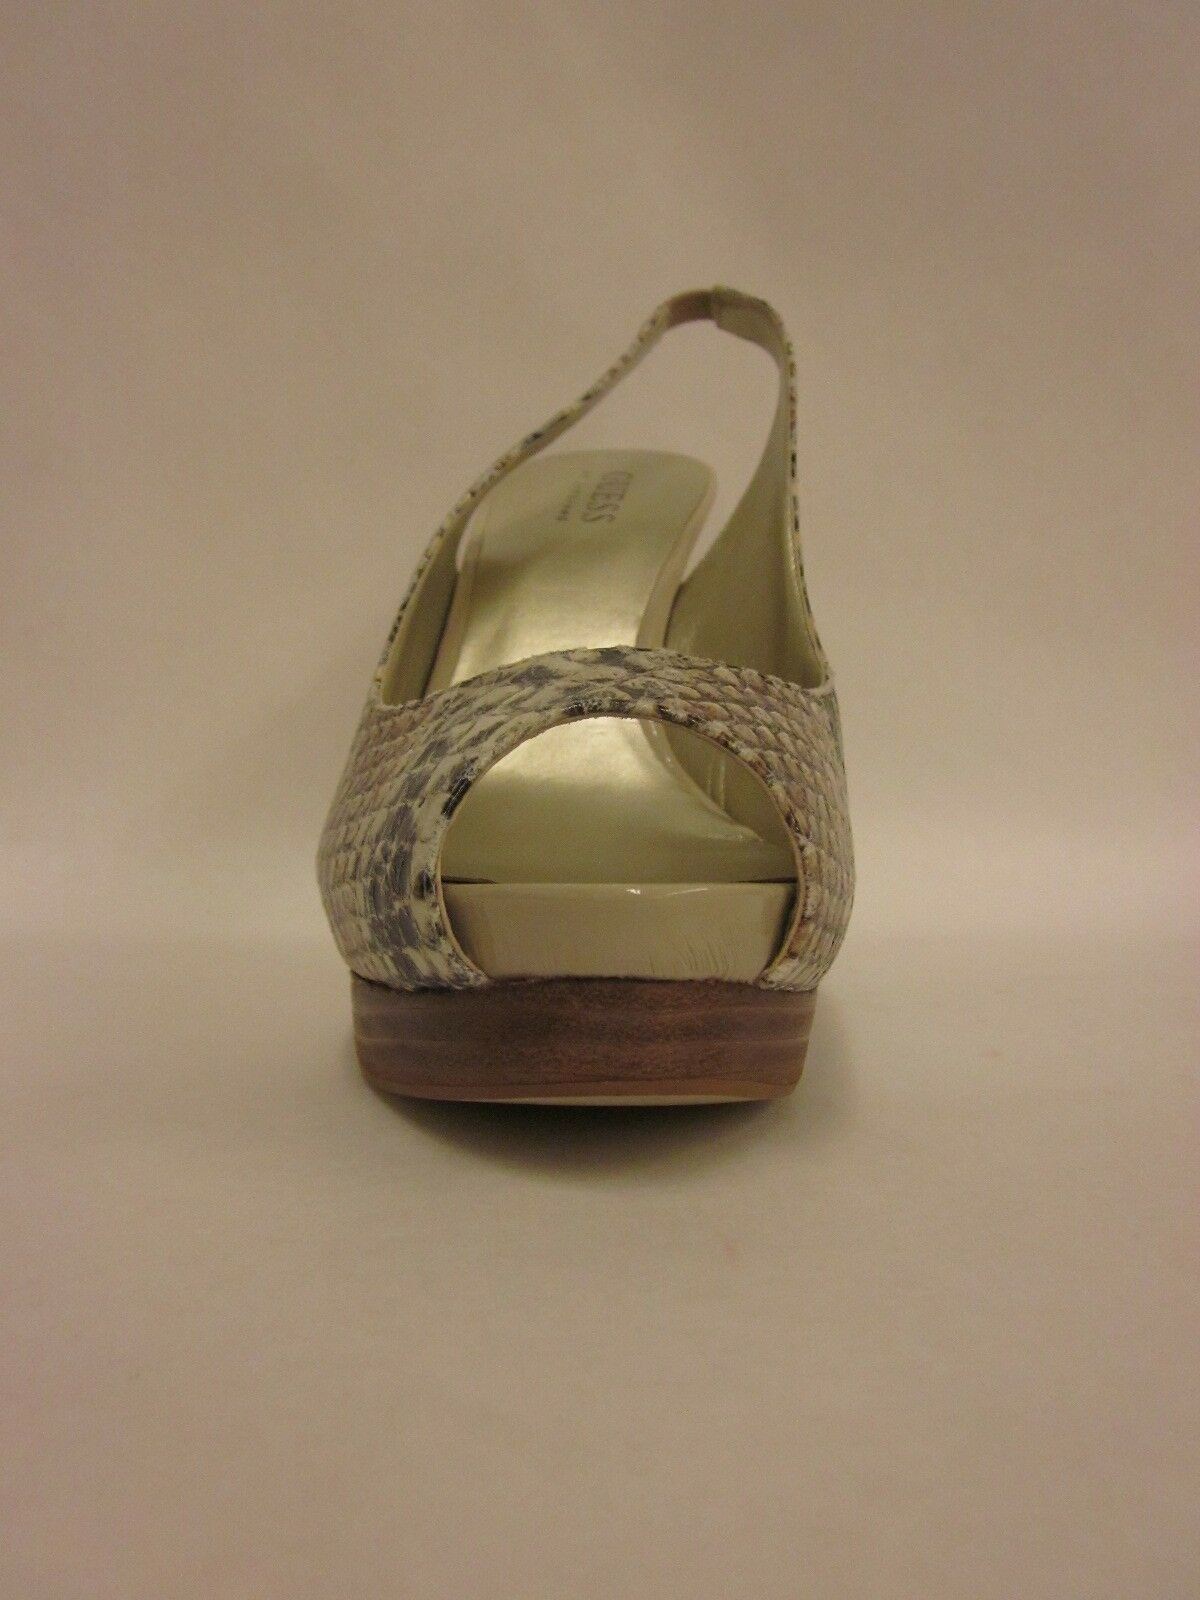 Guess Guess Guess Chandrika 3 Natural Multi-Synthetic Heel - Size 9 0b98c4